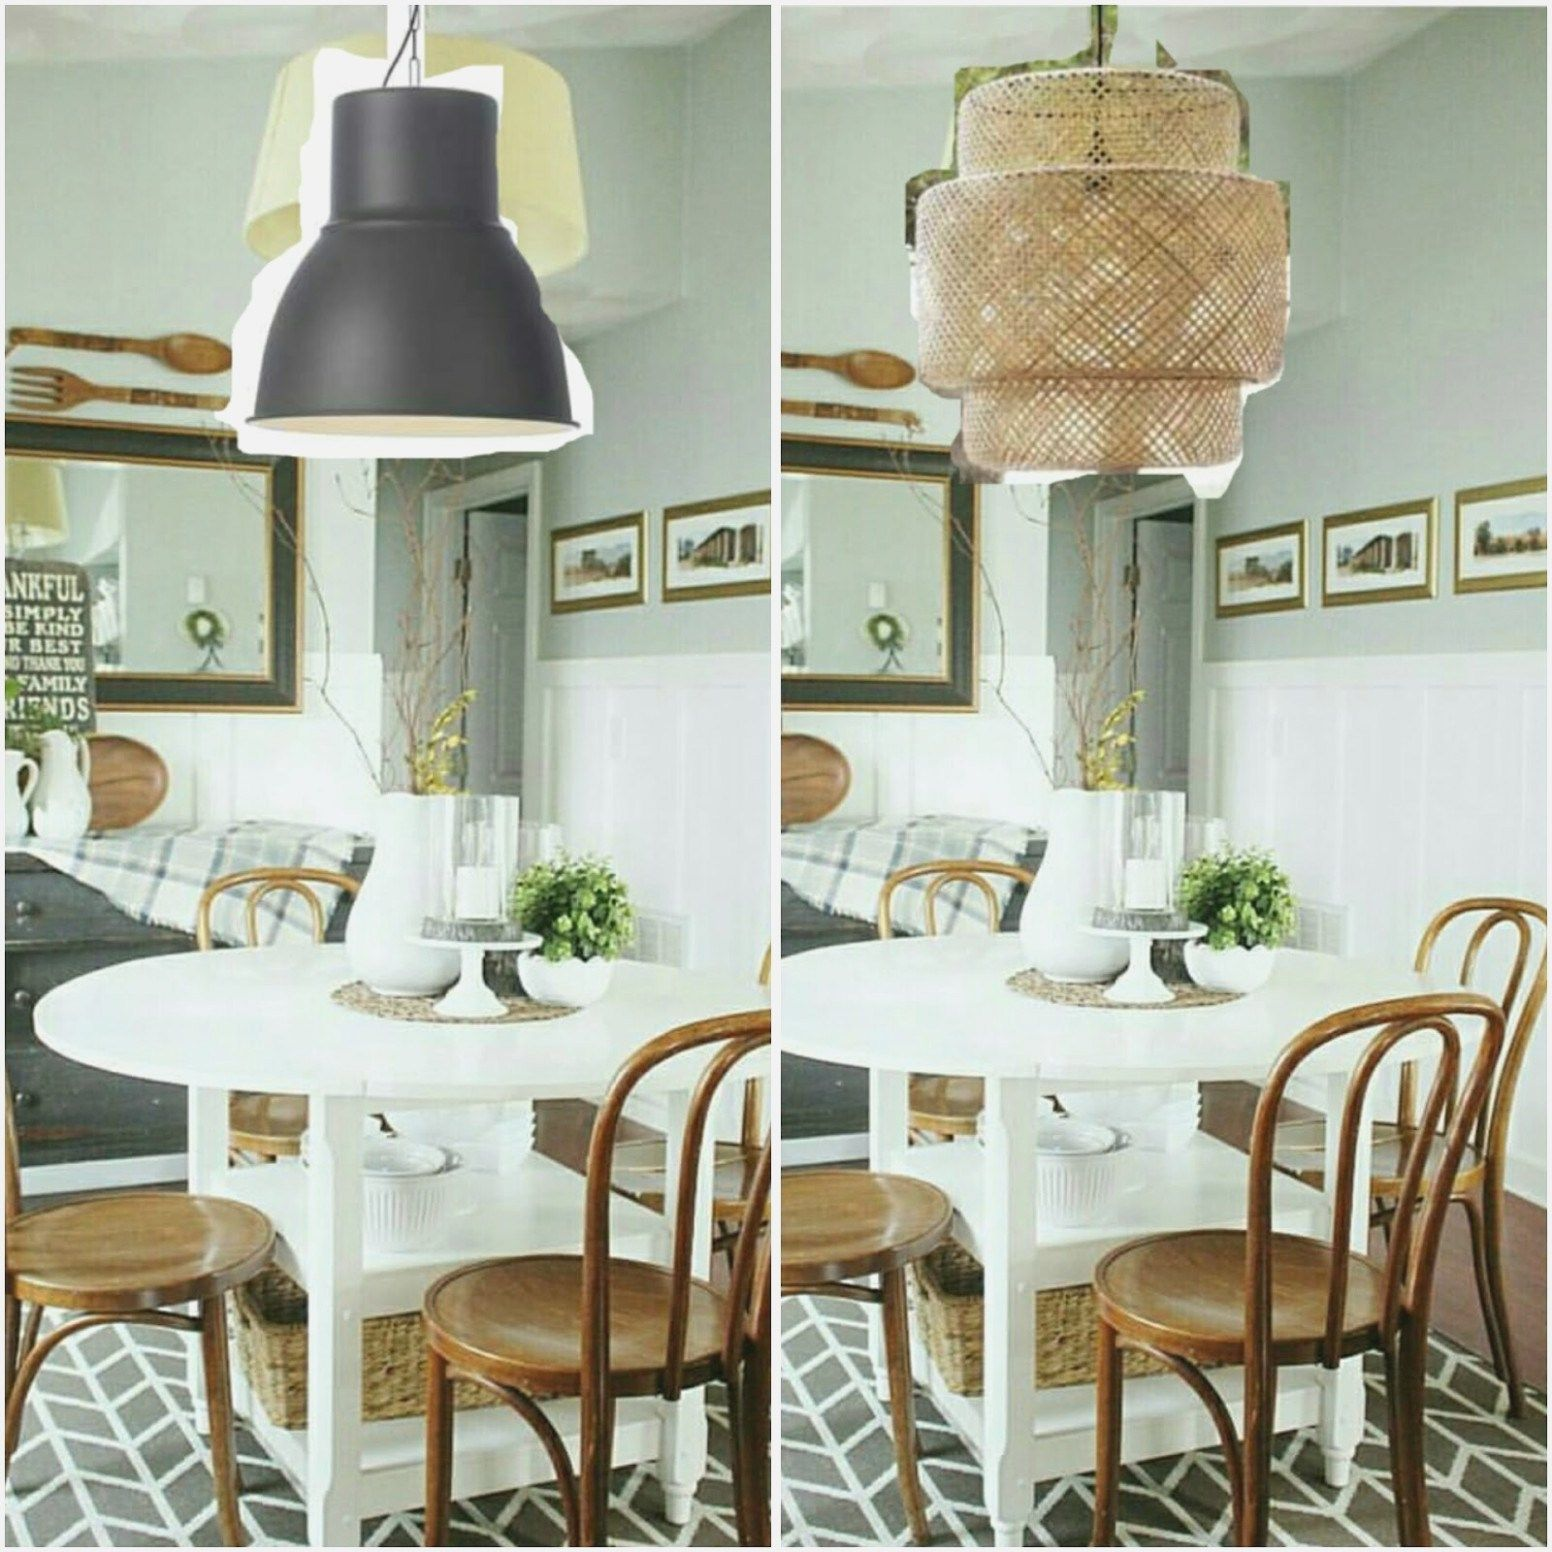 Dining Room Lighting Ikea Rustic Full Size Of Hektar